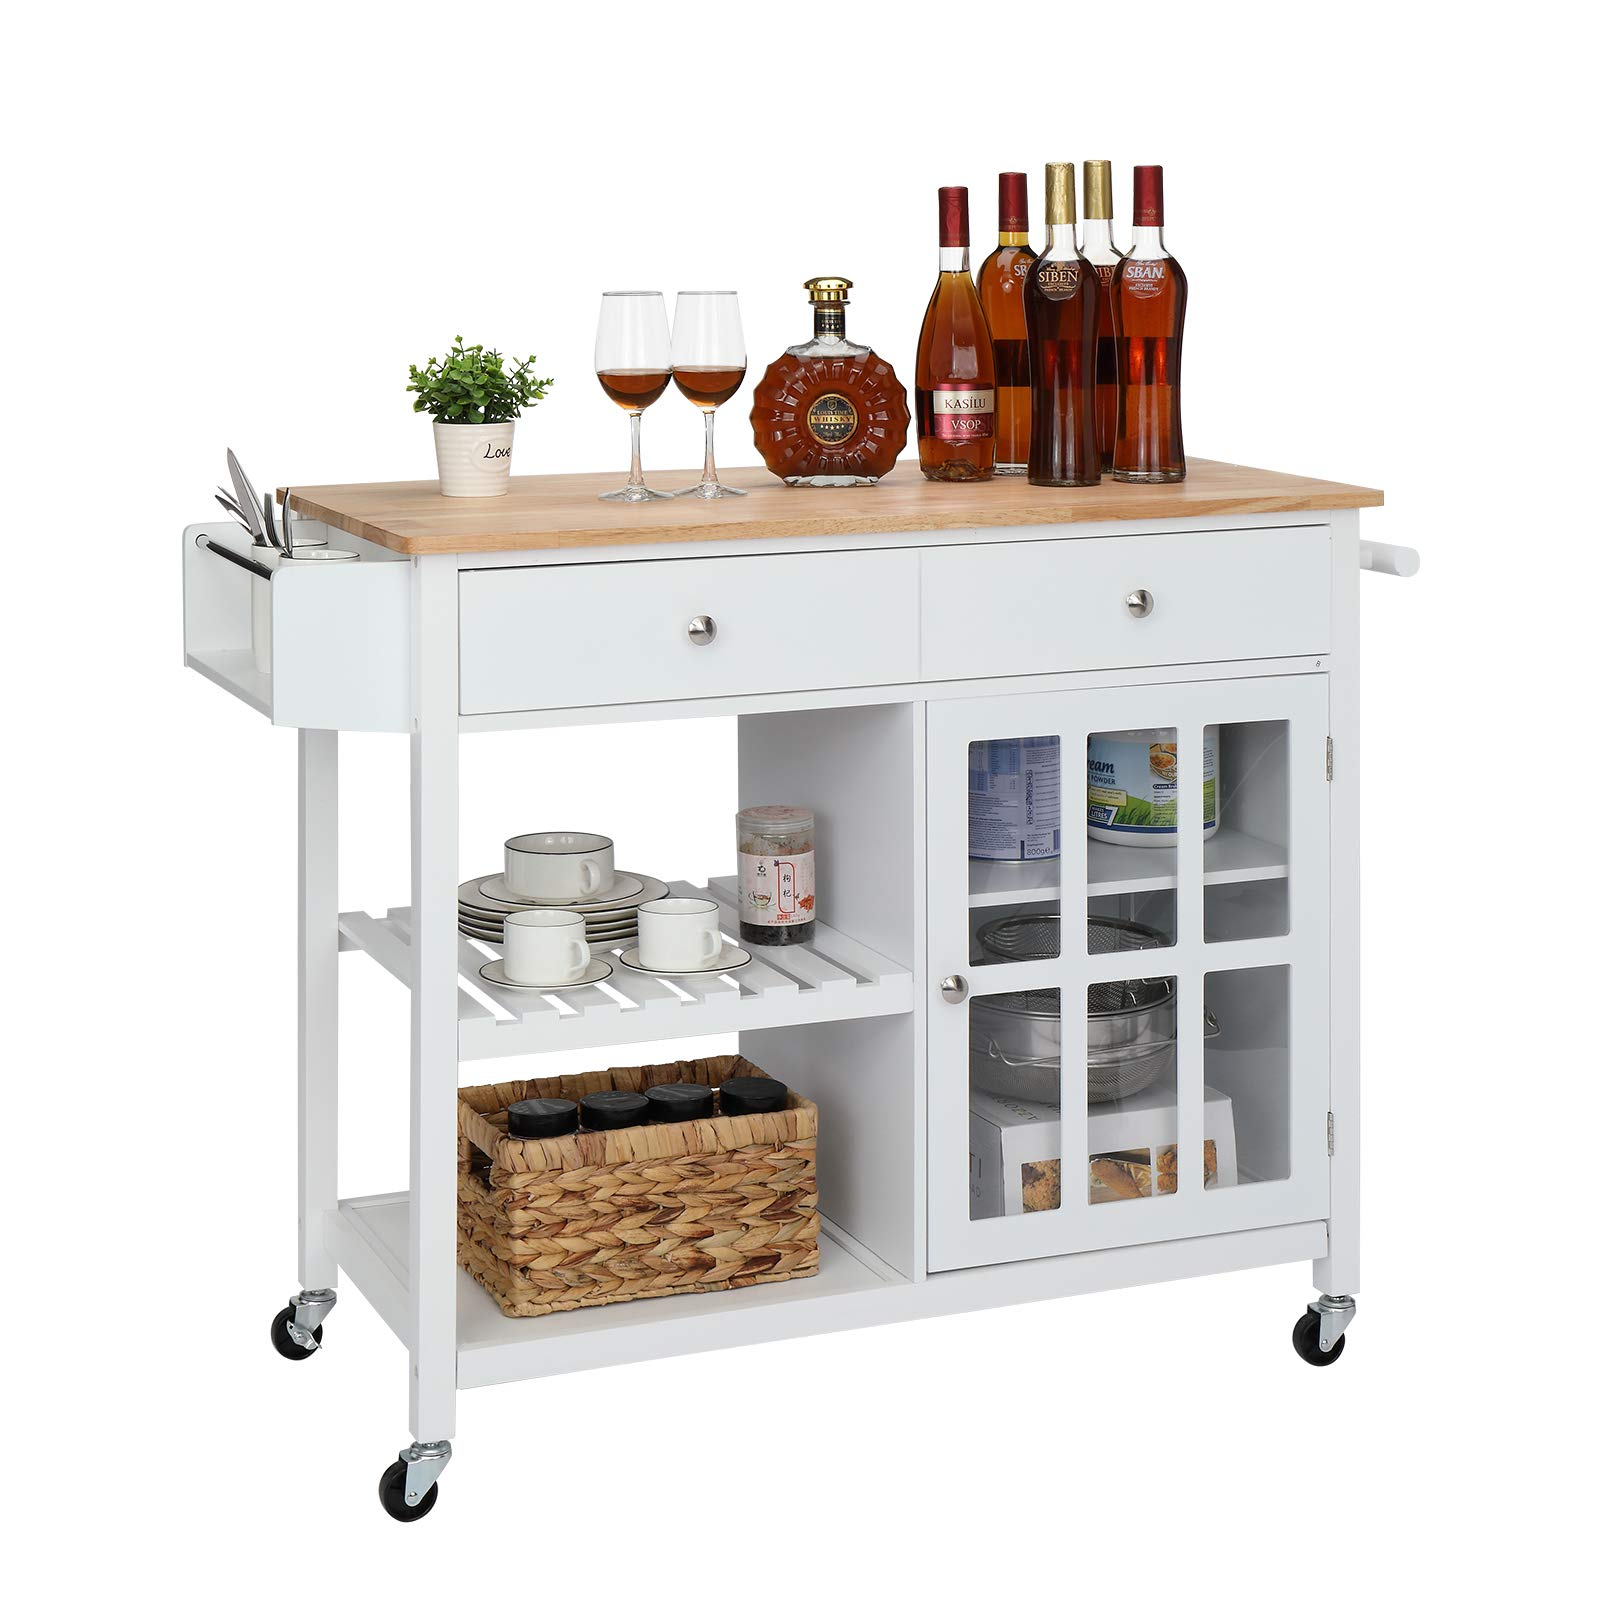 VINGLI Kitchen Island Rolling Utility Trolley White Coffee Bar Cabinet Cart with Tempered Glass Door, Drawer, Open Storage Shelves, Towel Handle, Spice Rack and Solid Wood Toptable